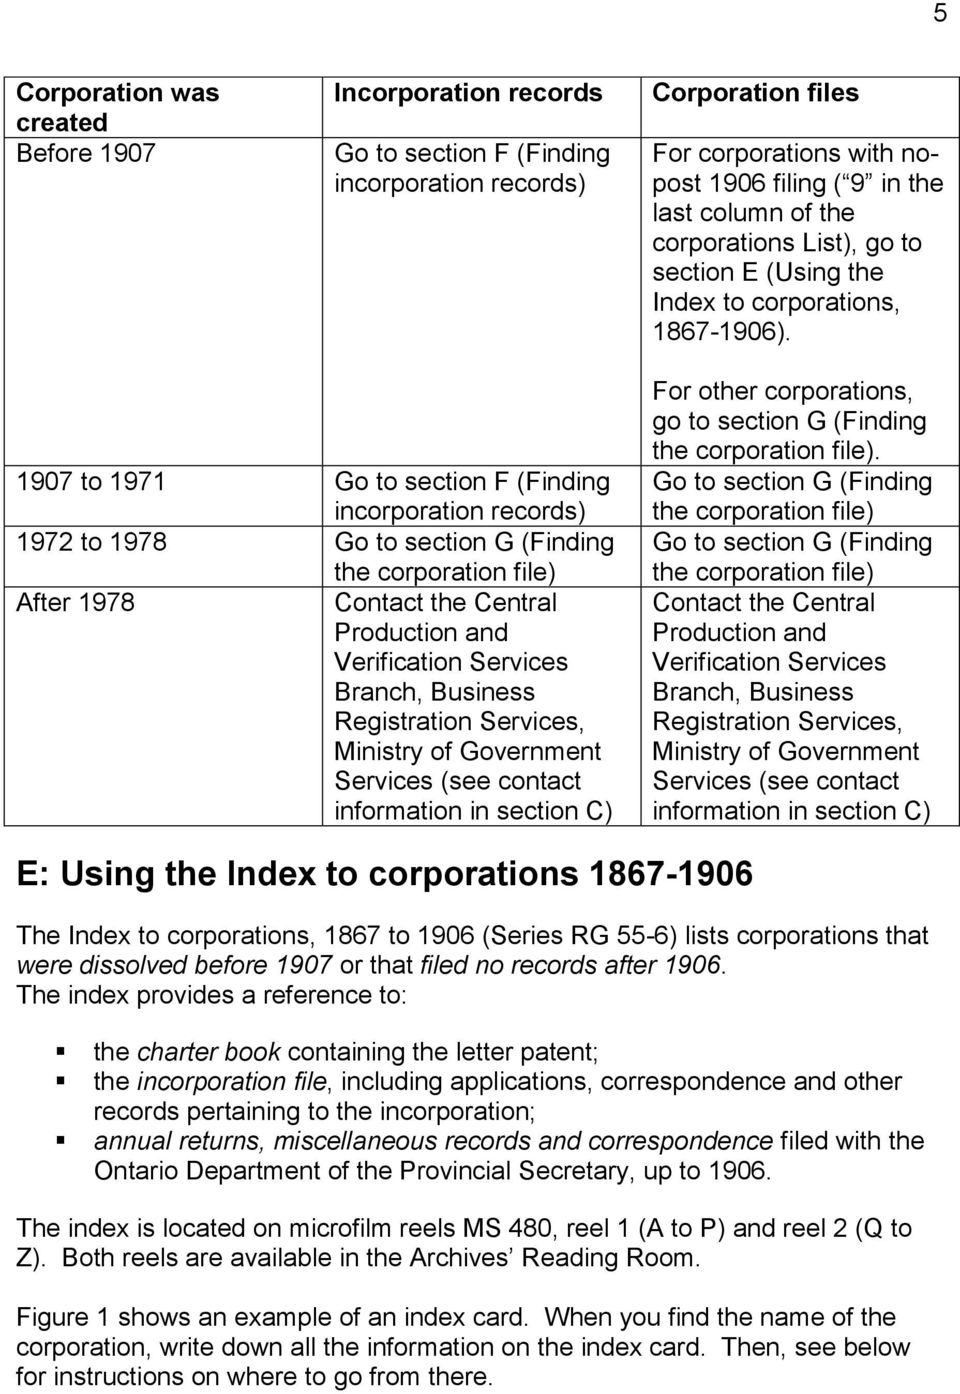 1907 to 1971 Go to section F (Finding incorporation records) 1972 to 1978 Go to section G (Finding the corporation file) After 1978 Contact the Central Production and Verification Services Branch,